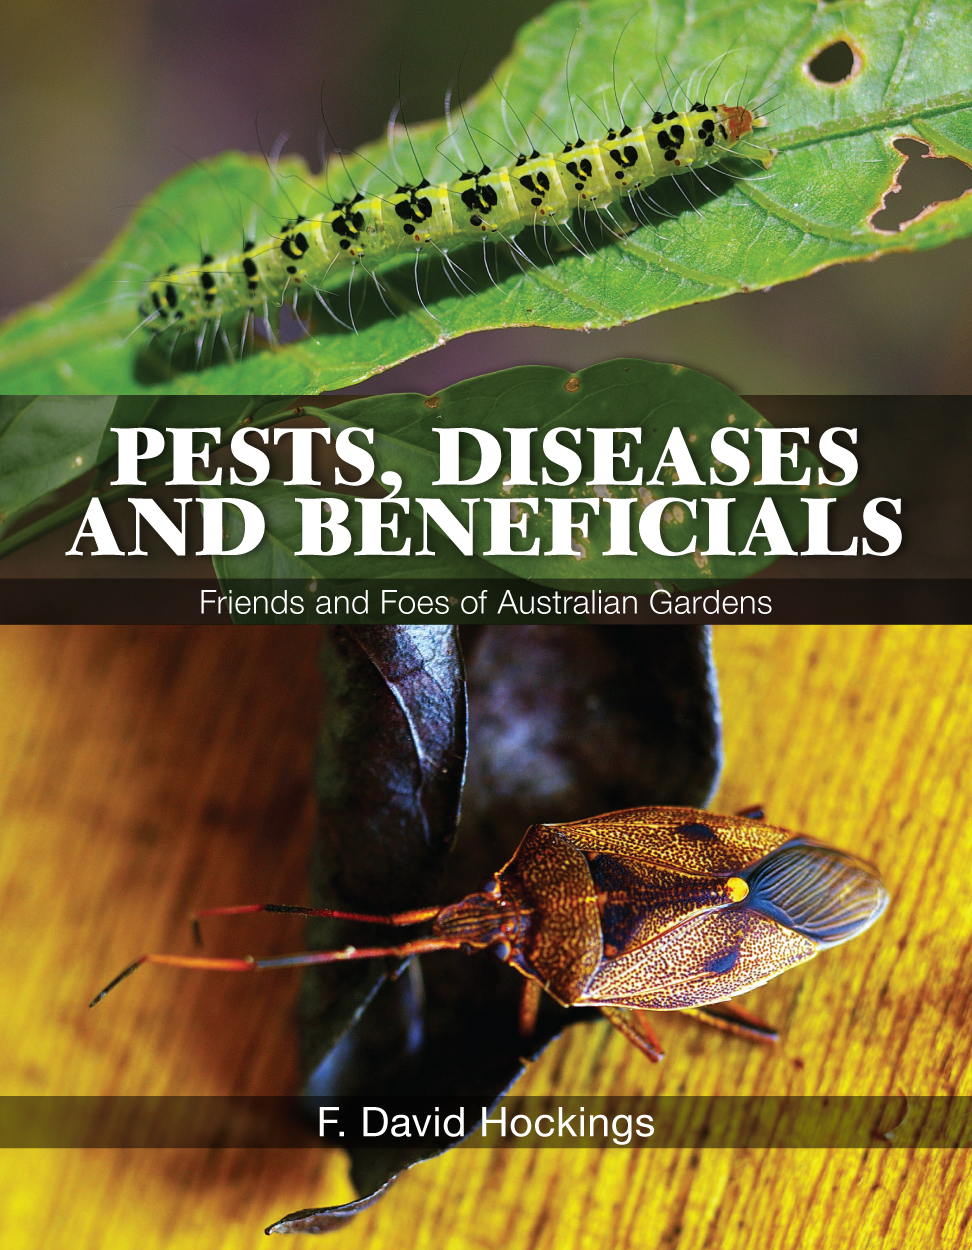 The cover image of Pests, Diseases and Beneficials, featuring two photogra